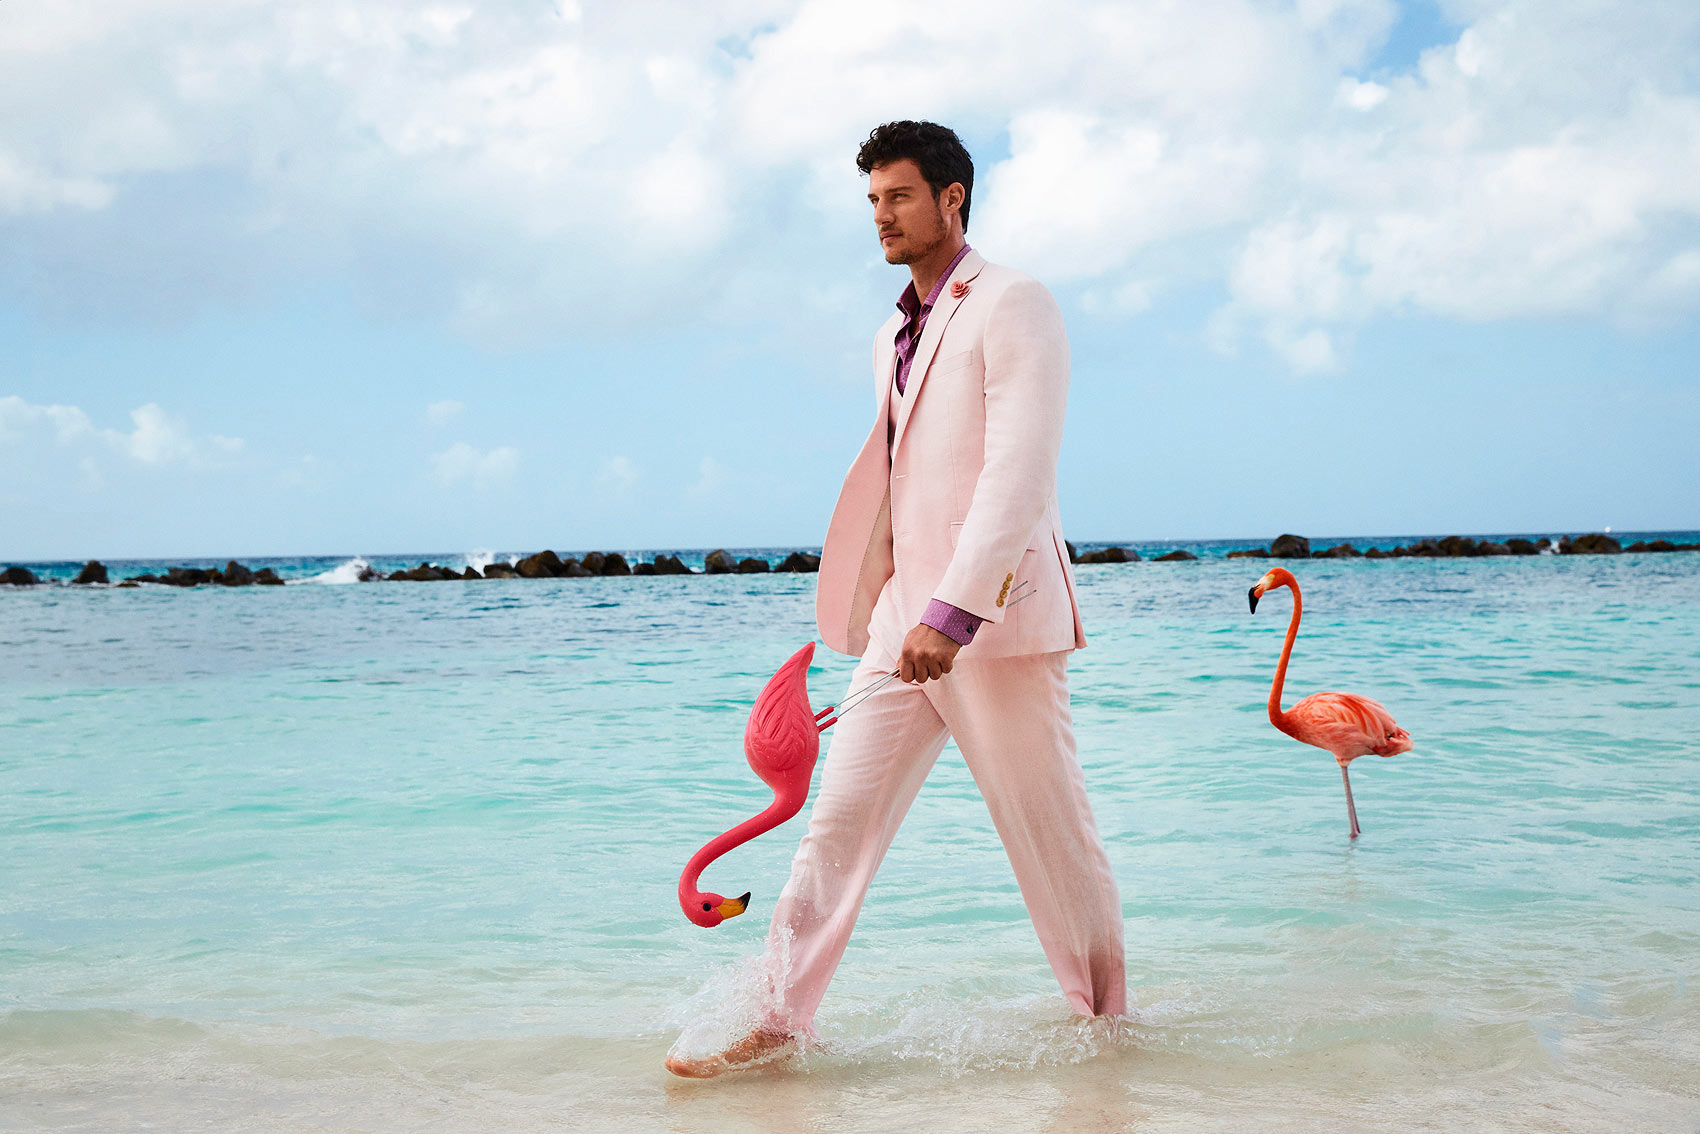 RH_Lifestyle_2019_resort_Flamingos_S03_01242